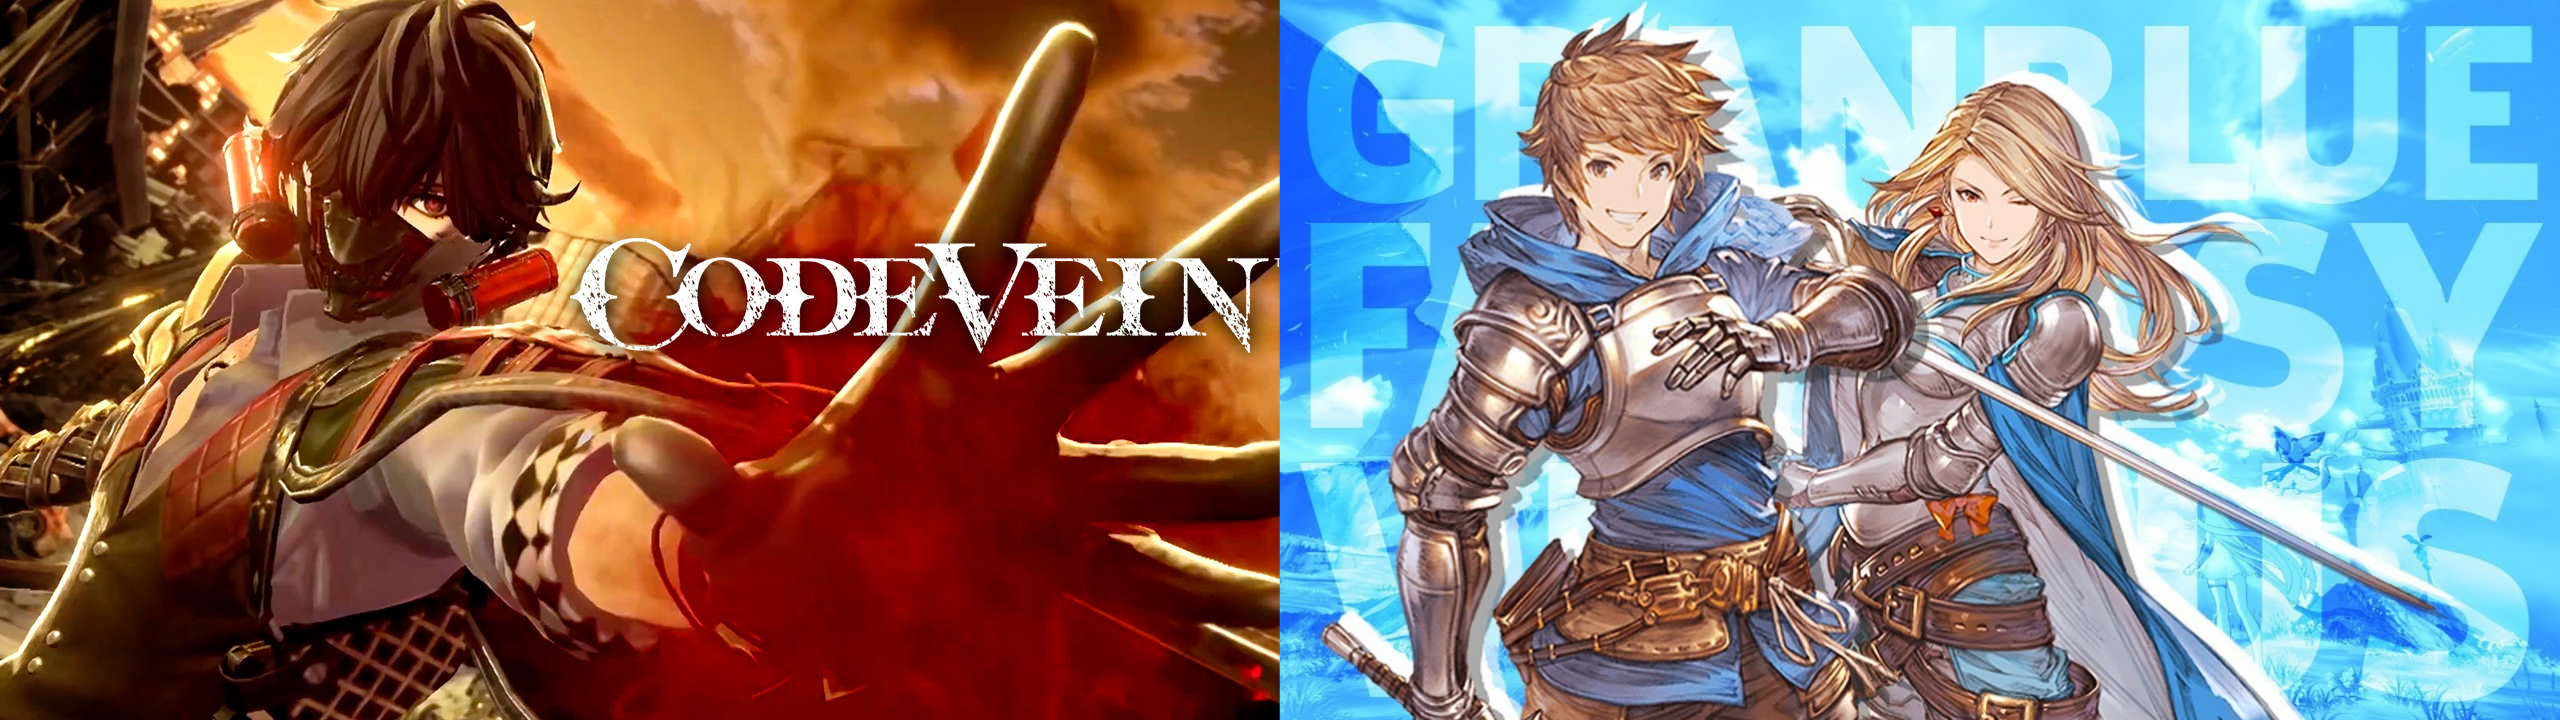 Top Rising Betas on Twitch: Code Vein and Granblue Fantasy: Versus